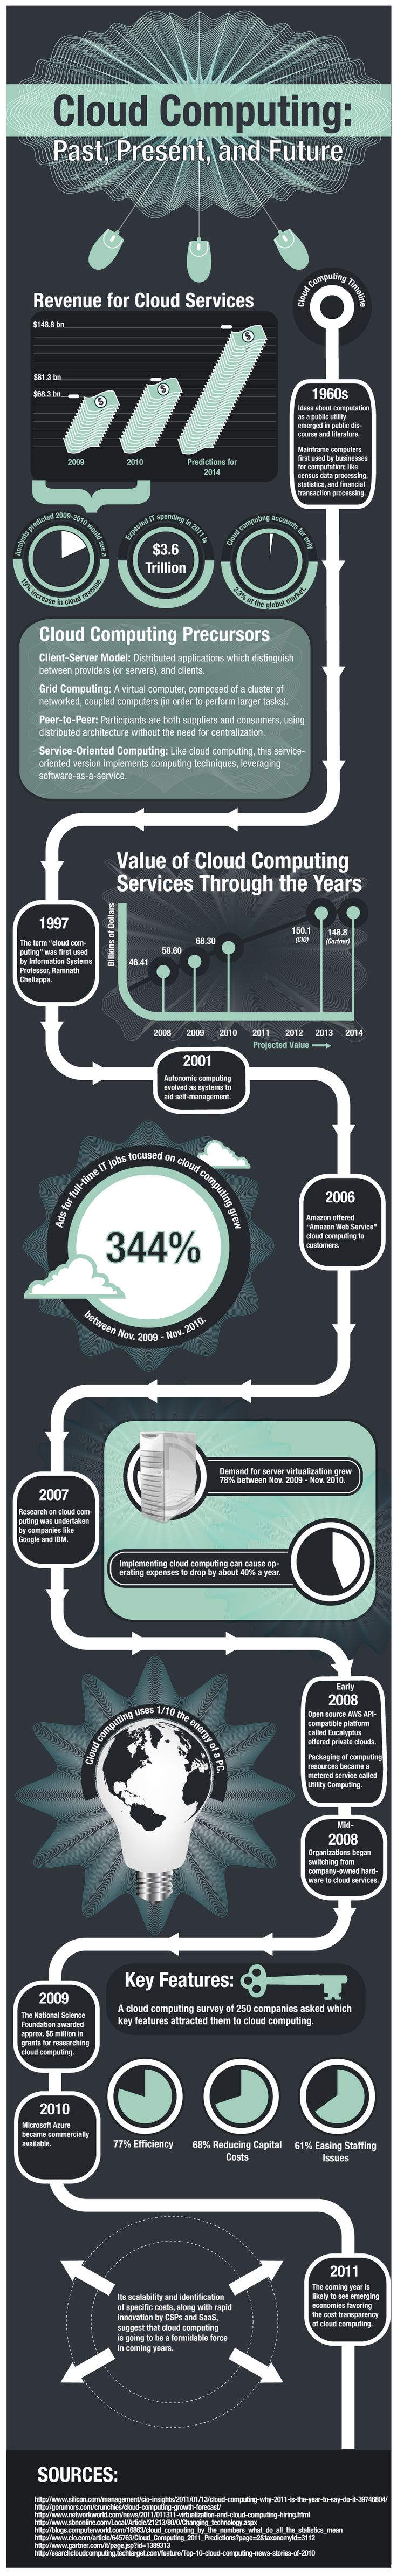 The history and future of cloud computing